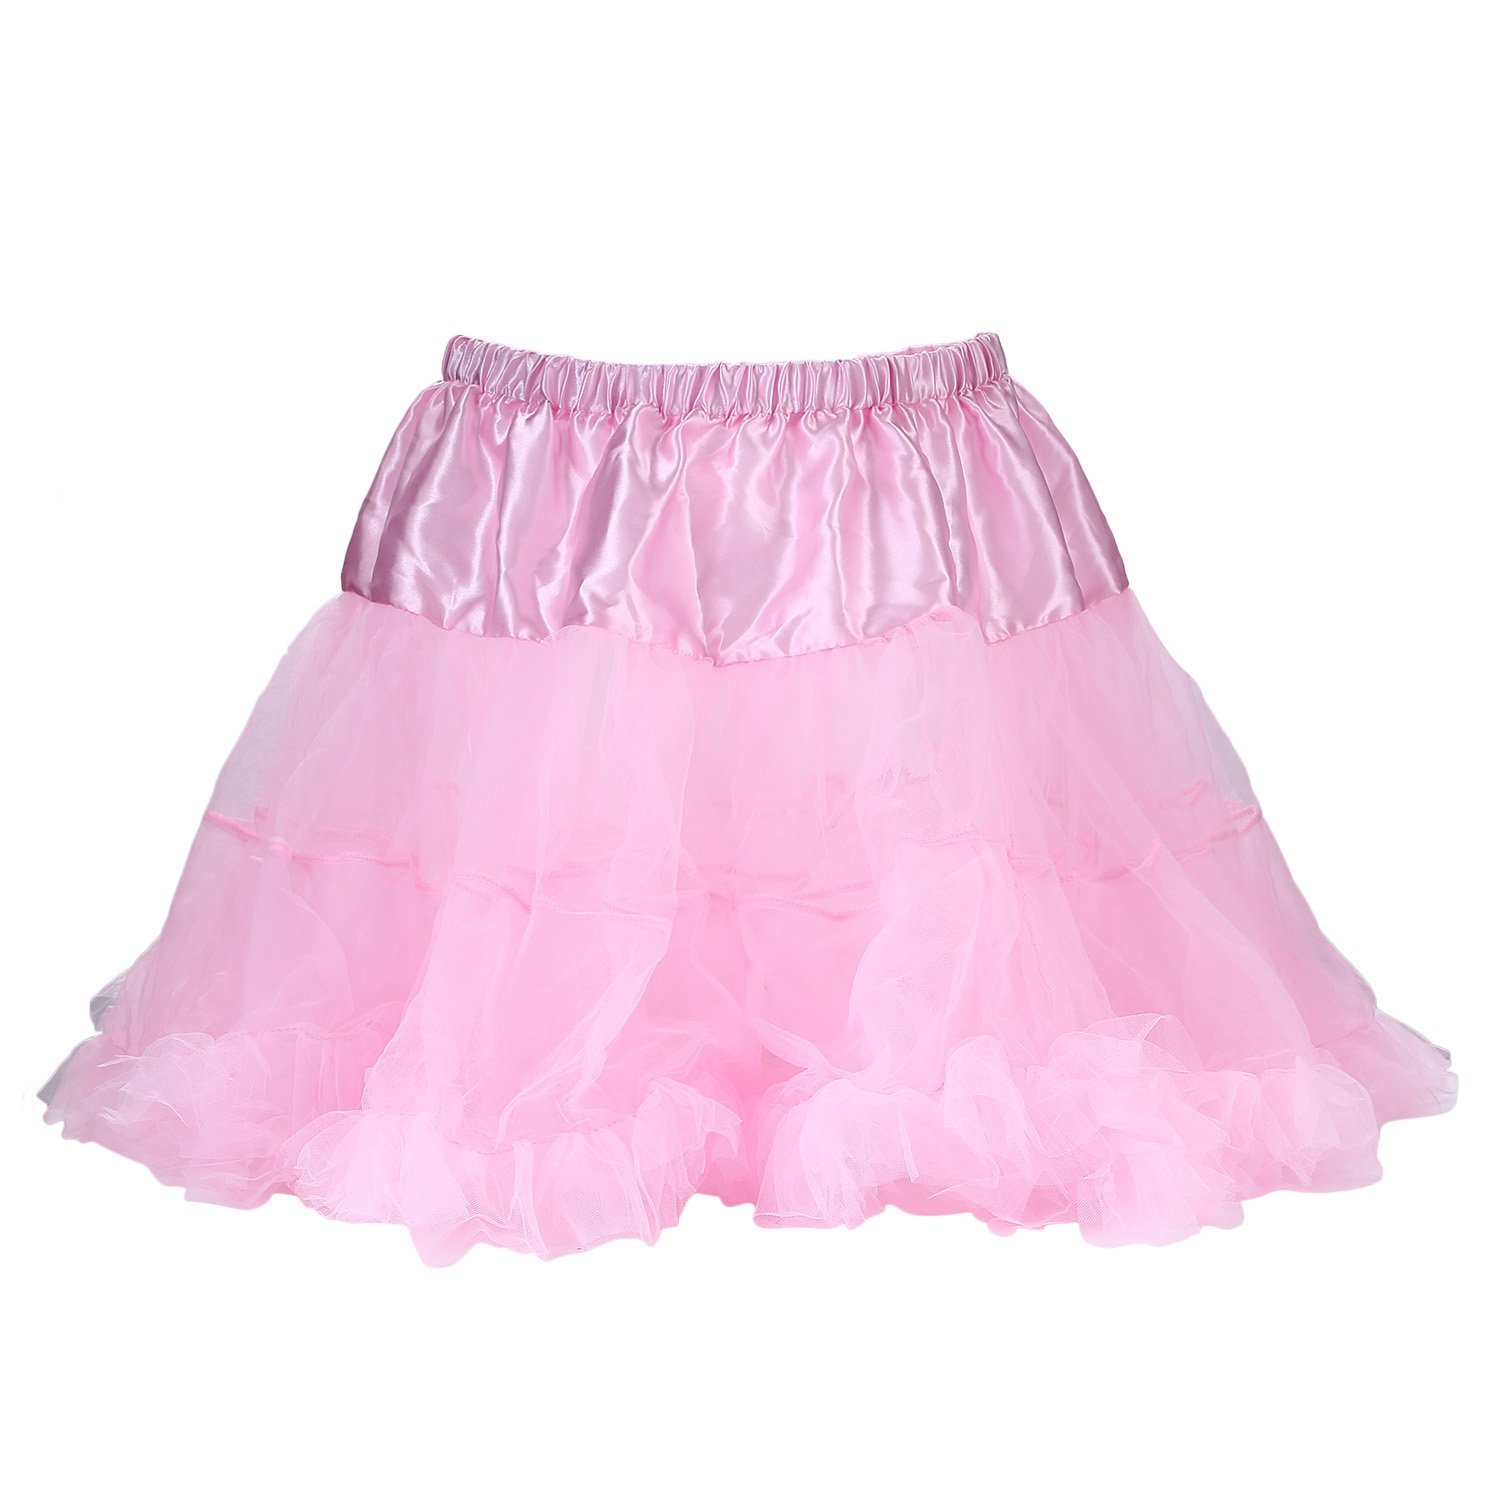 UTOVME Womens 4-Layered Petticoat Tulle Tutu Bubble Skirt for Dance Party MS003310